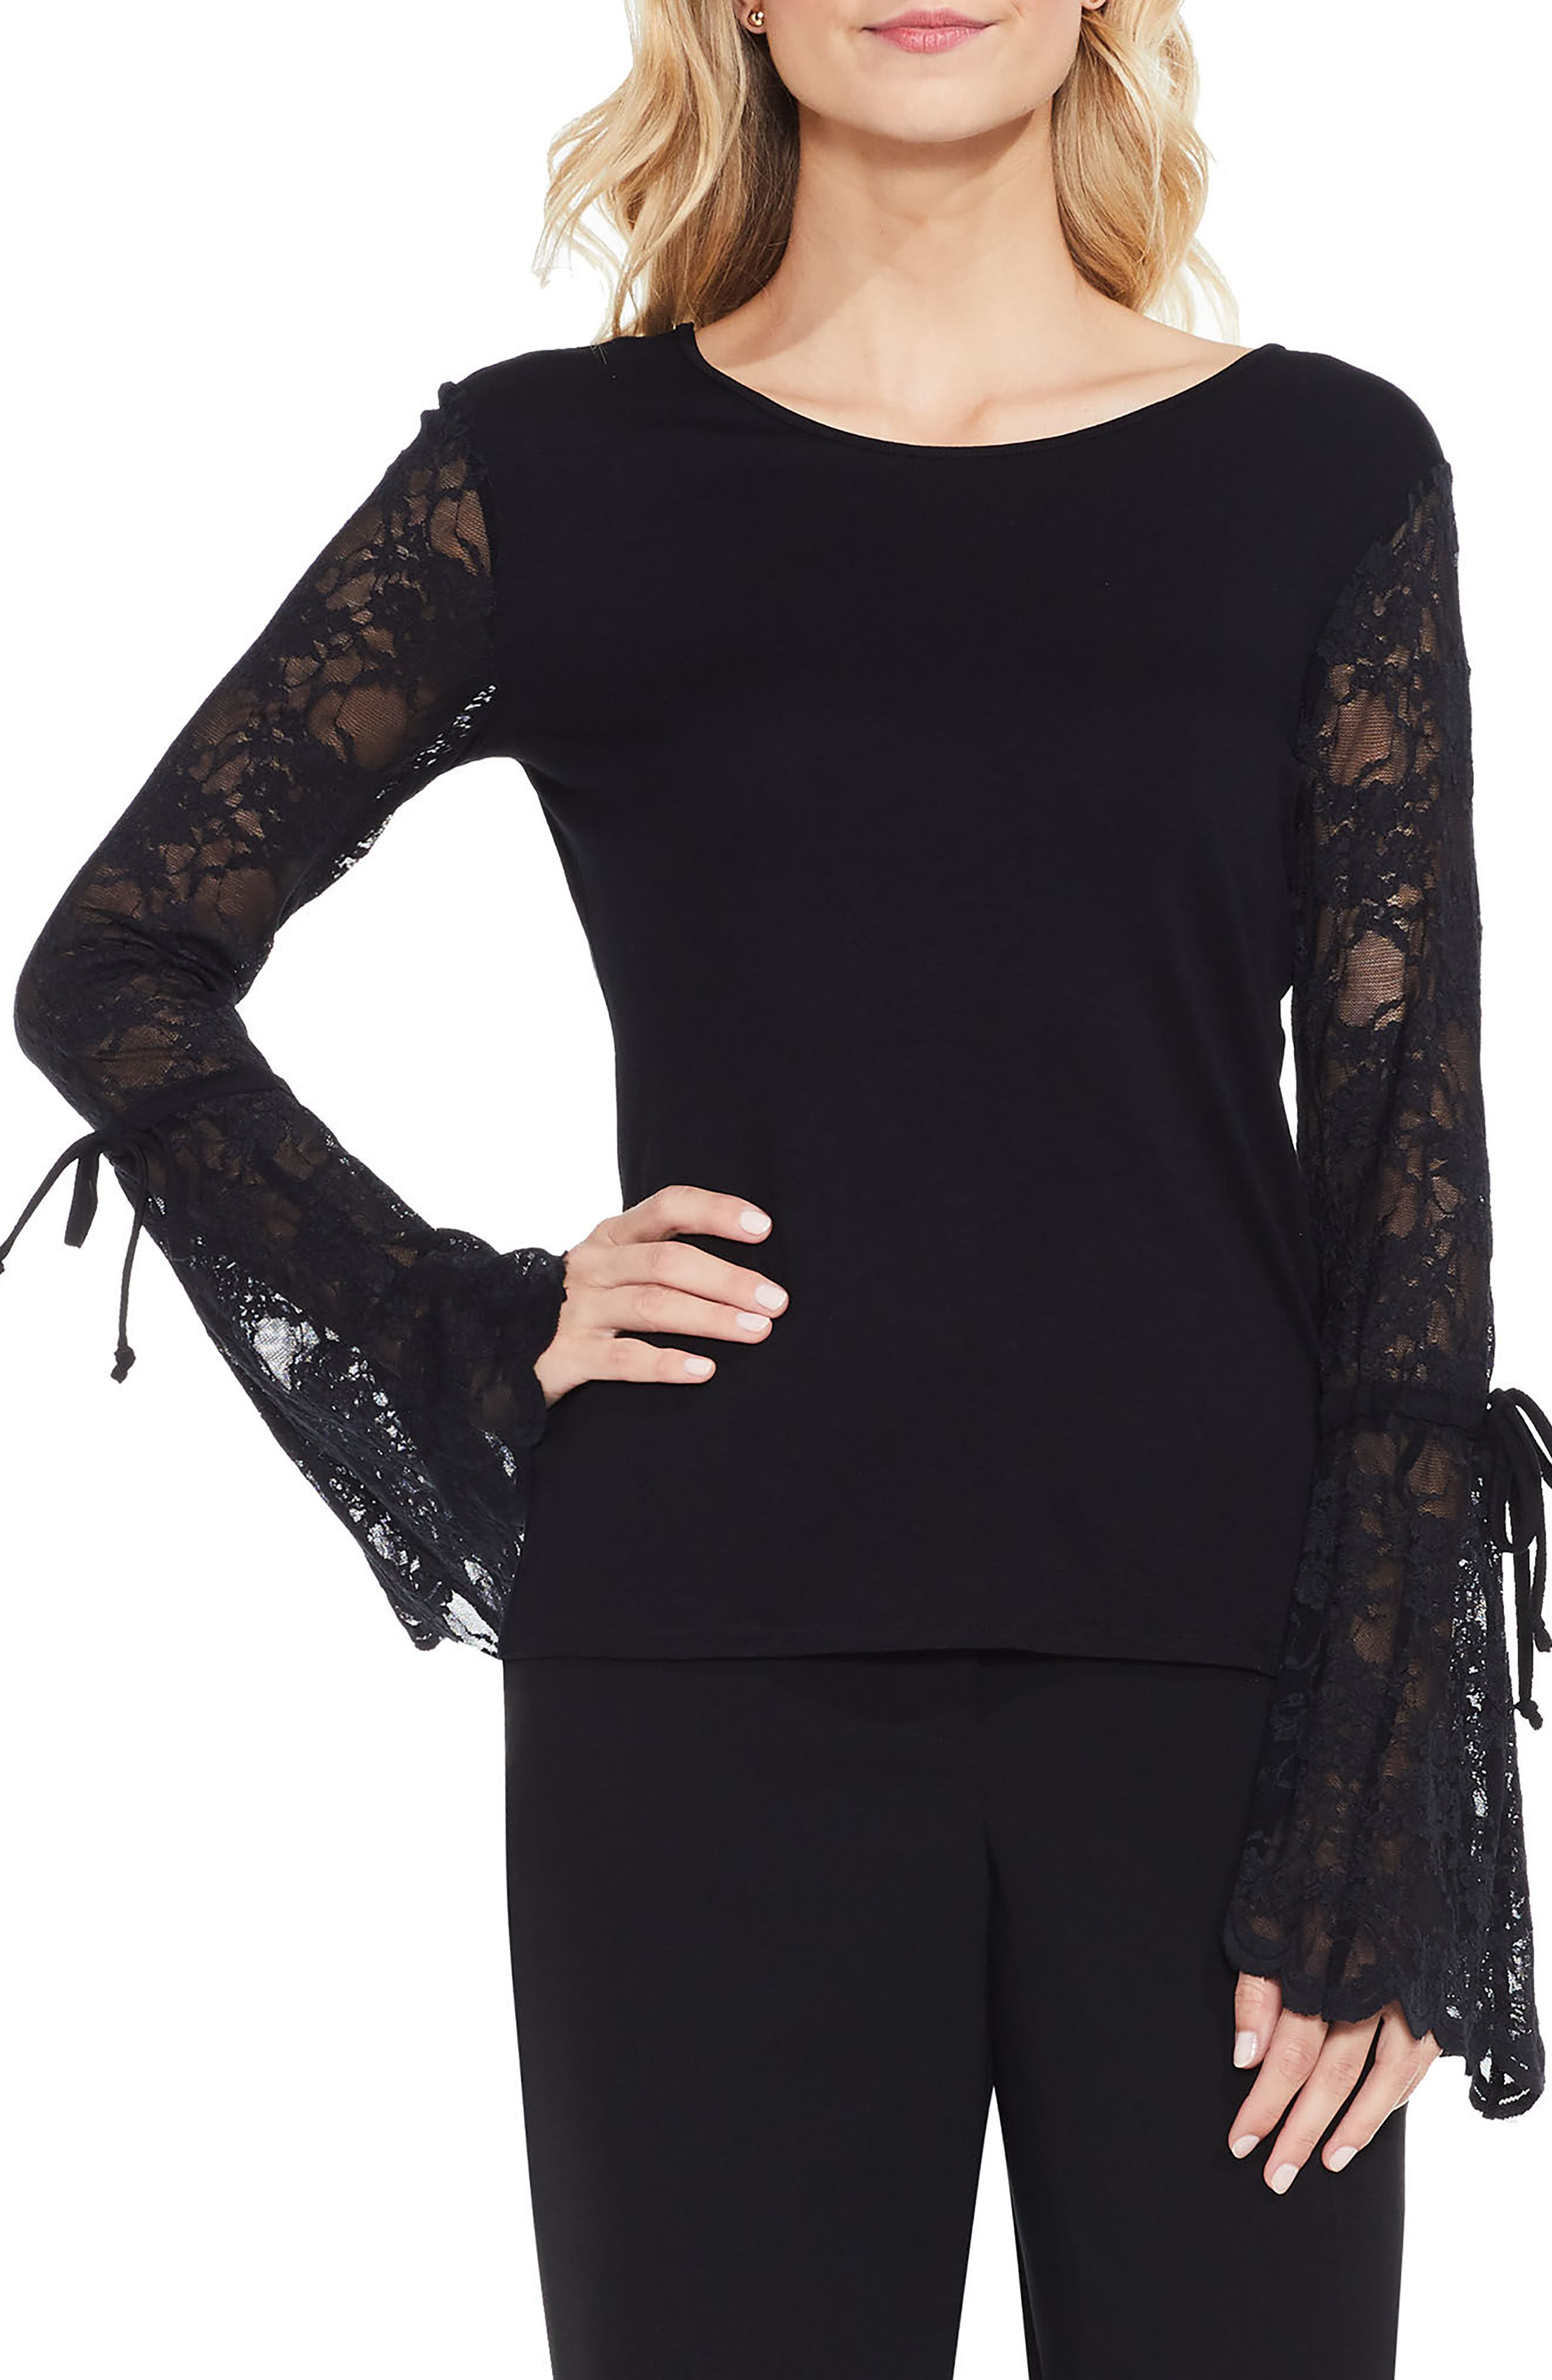 Lace Bell Sleeve Top,                             Main thumbnail 1, color,                             006